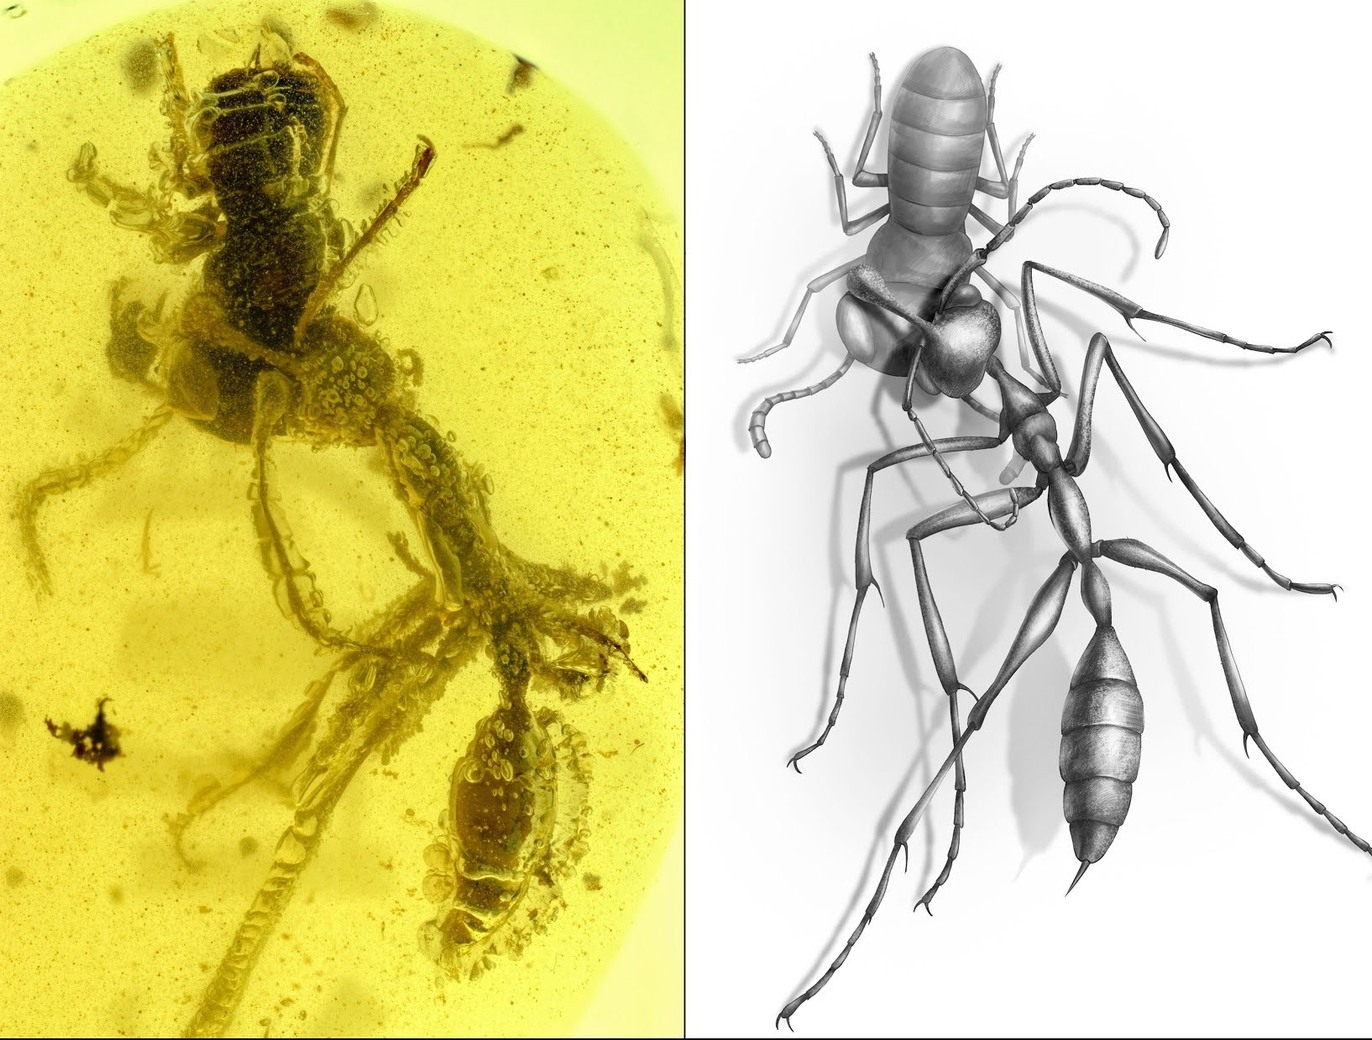 @zachary_77 posted one few days back here another 90 odd million year old bug in amber - meme